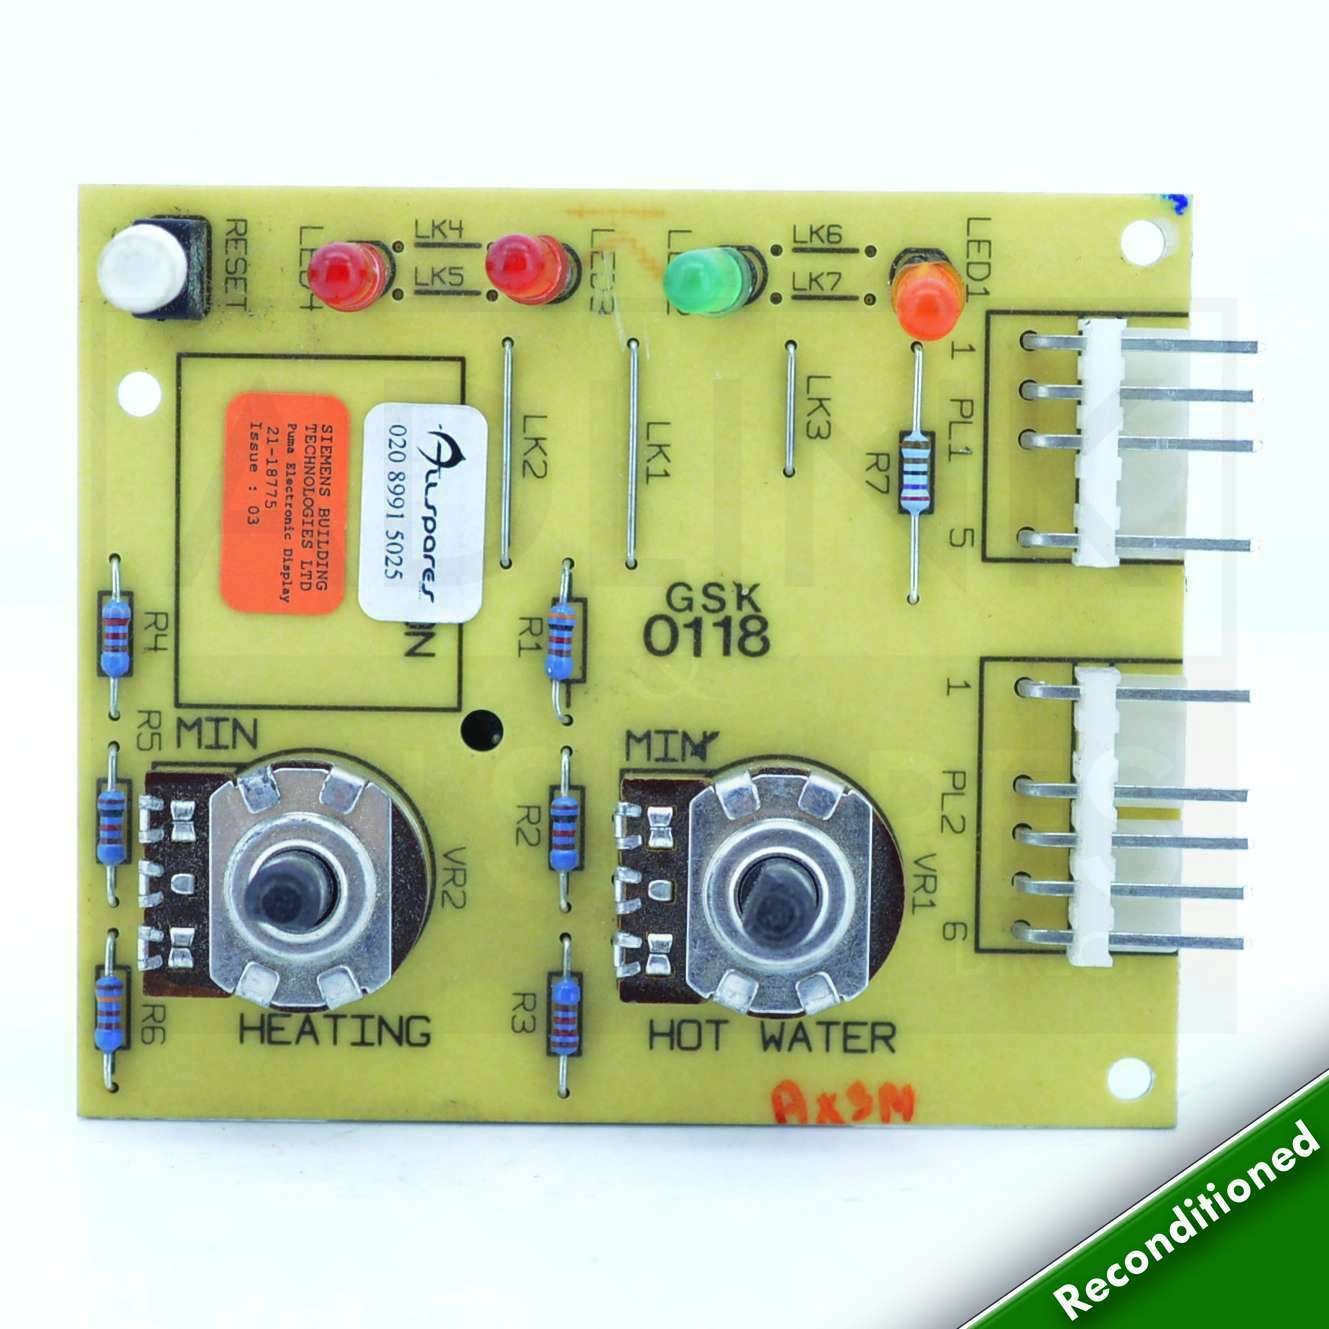 Potterton Puma 80e 100e Display Pcb 929688 Was 21 18775 With 1 Printed Circuit Board Main Fuse 5 Wire S900817 Norton Secured Powered By Verisign